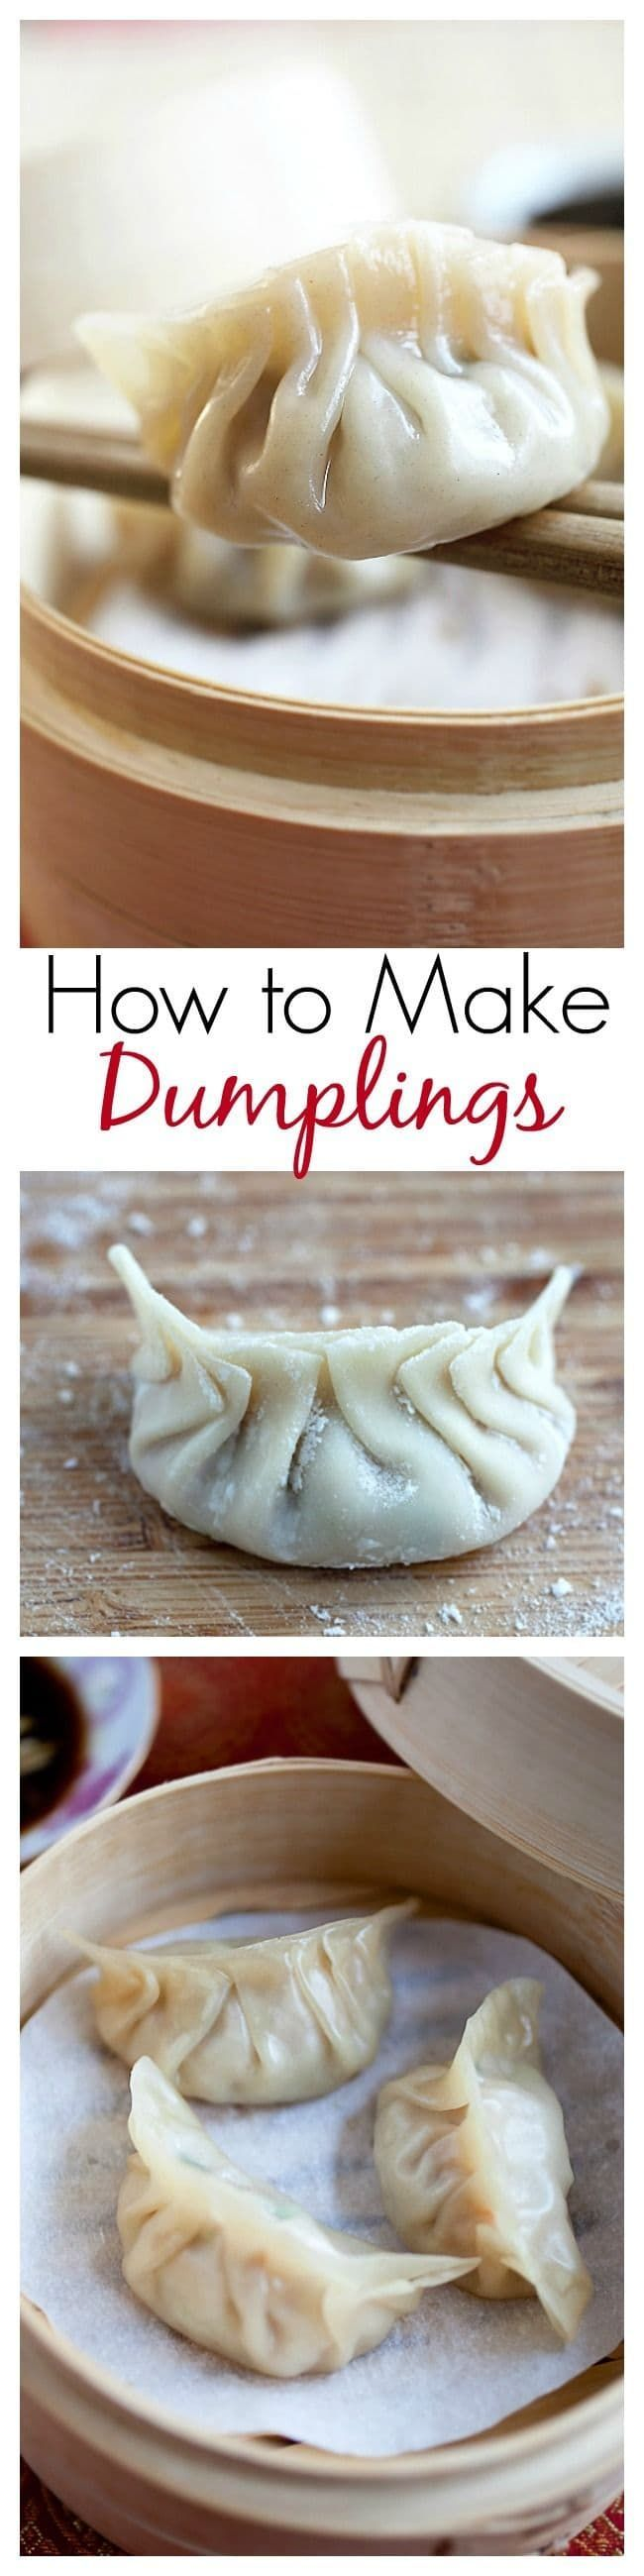 How to make dumplings - learn the easy steps to make healthy and delicious dumplings   rasamalaysia.com